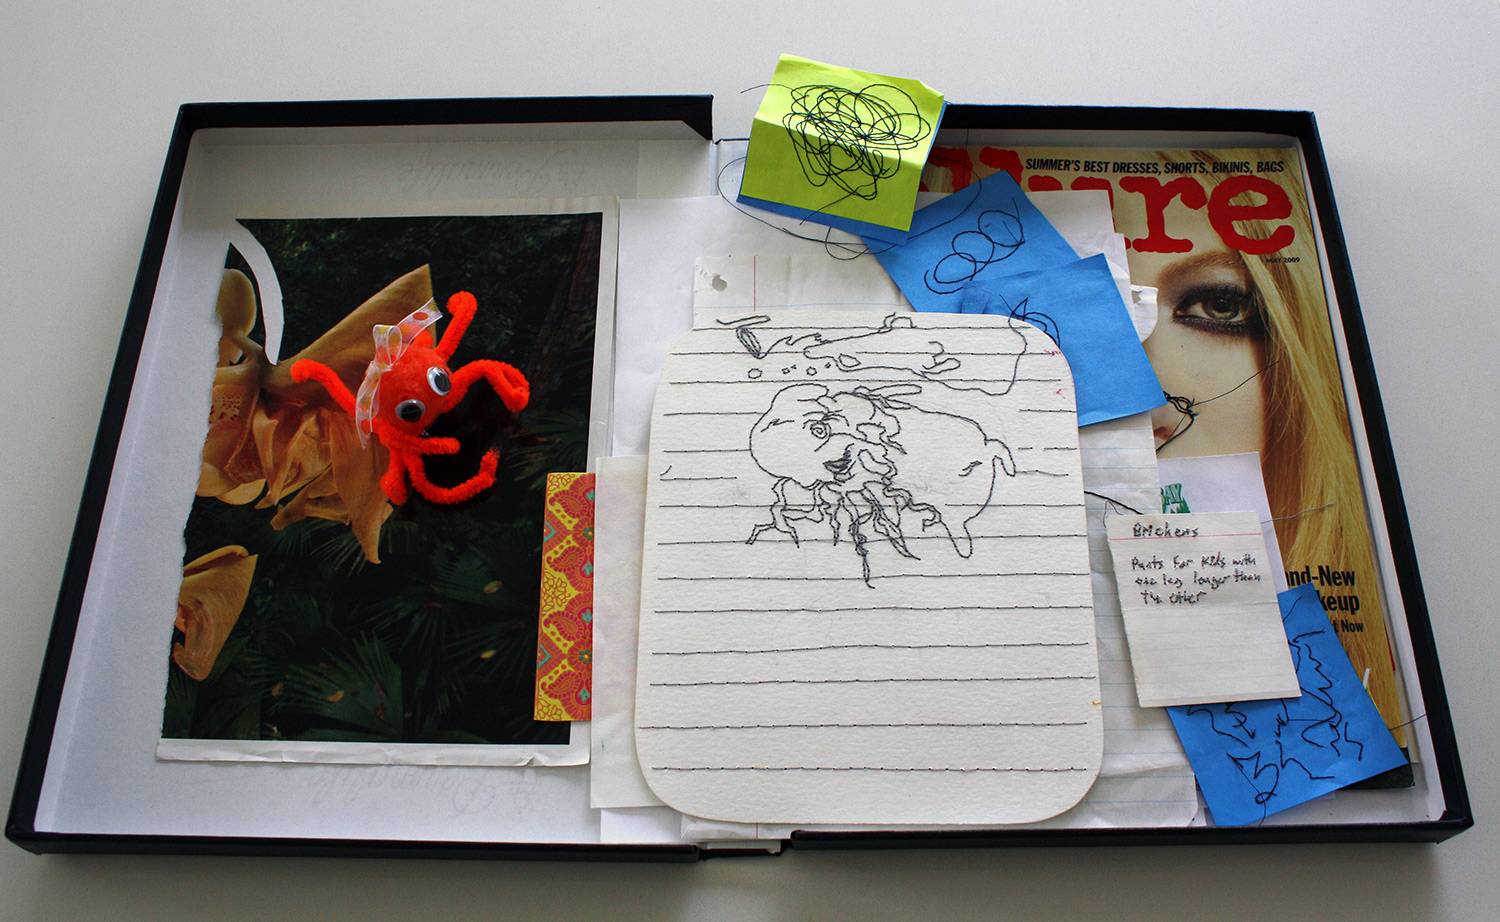 """Marc Dombrosky,   Case 3 / Untitled (You Most Likely Can do it. Good Luck)   2017, 27 elements: twenty-one (21) hand-embroidered found papers, octopus pin, raffle tickets, found magazine clippings;case is a Century Archival Storage box measuring 12.375 x 9.375 x 1 inches, closed. From the series """"Self Awareness."""""""